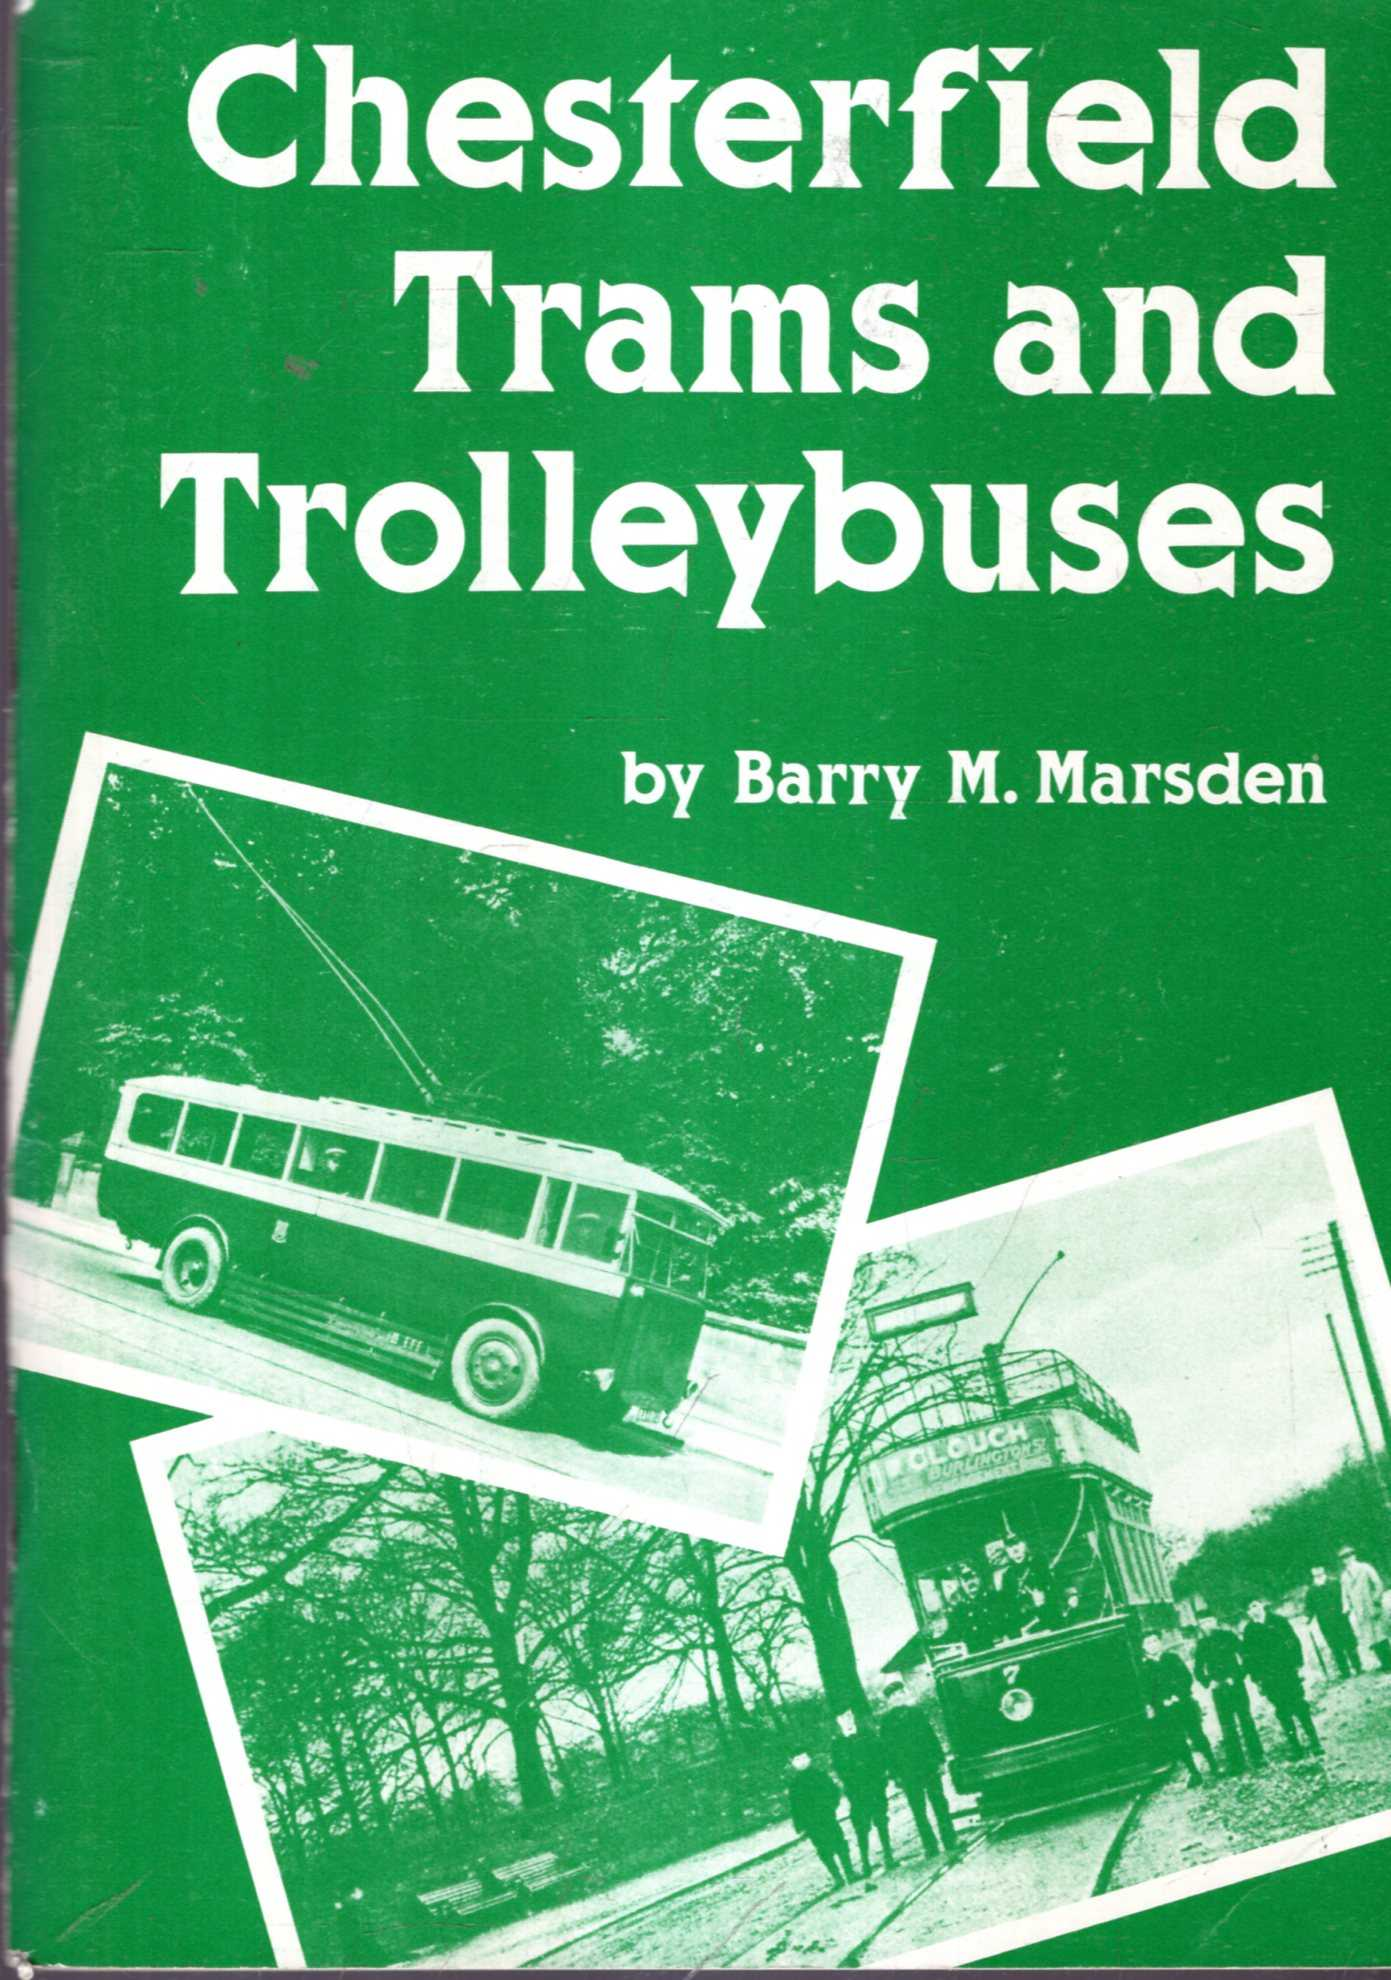 Image for Chesterfield Trams and Trolleybuses 1882-1938, a pictorial history